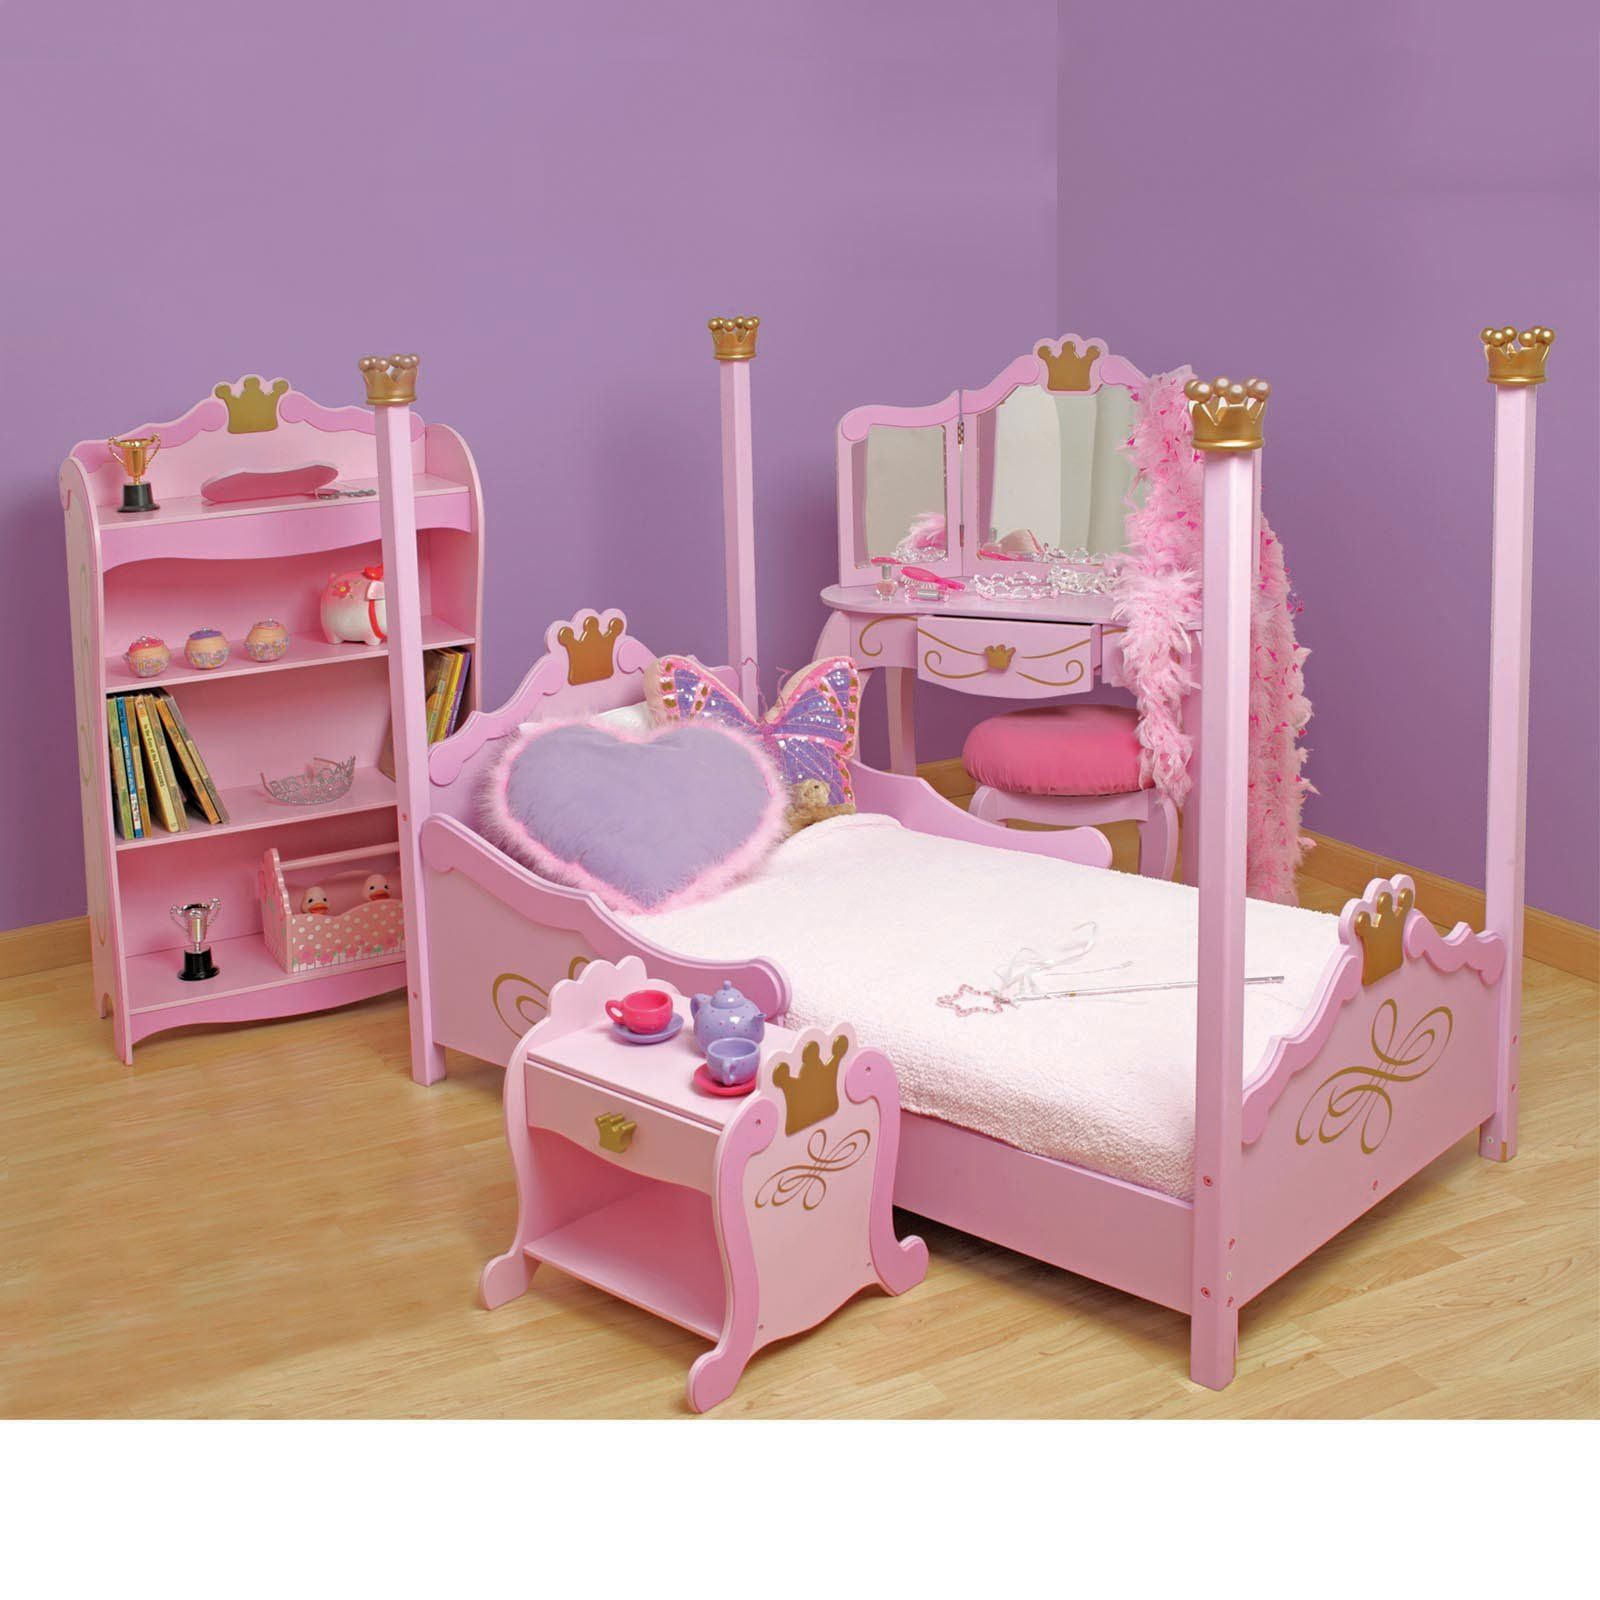 Cute Toddler Beds For Girls